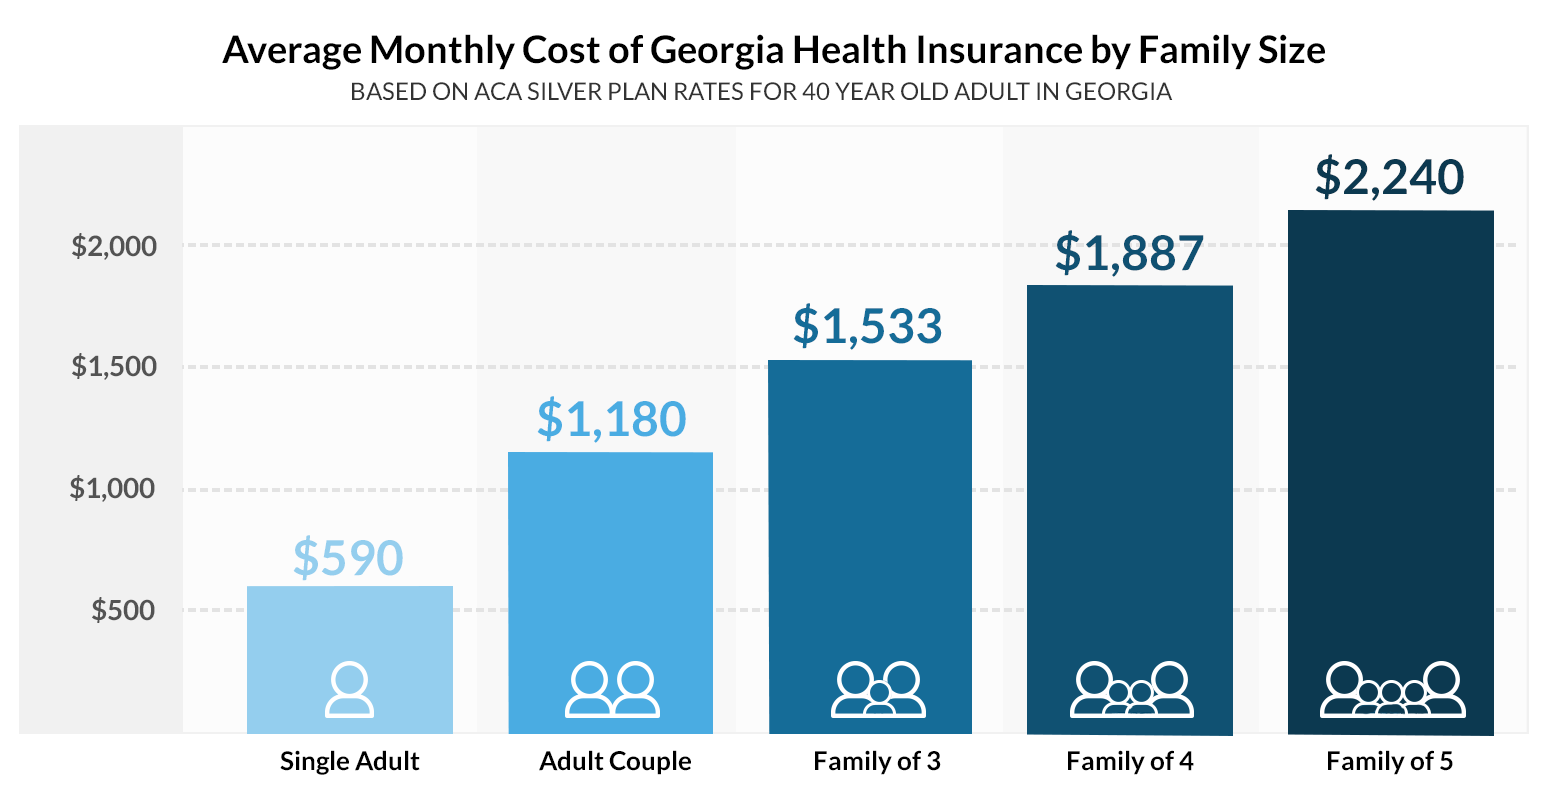 Cheap health insurance plans in Georgia with other health insurance options. Compare affordable plans for any budget. Get a free quote in a few minutes. Short term health insurance bridges the temporary gap to OEP and can be cancelled anytime.